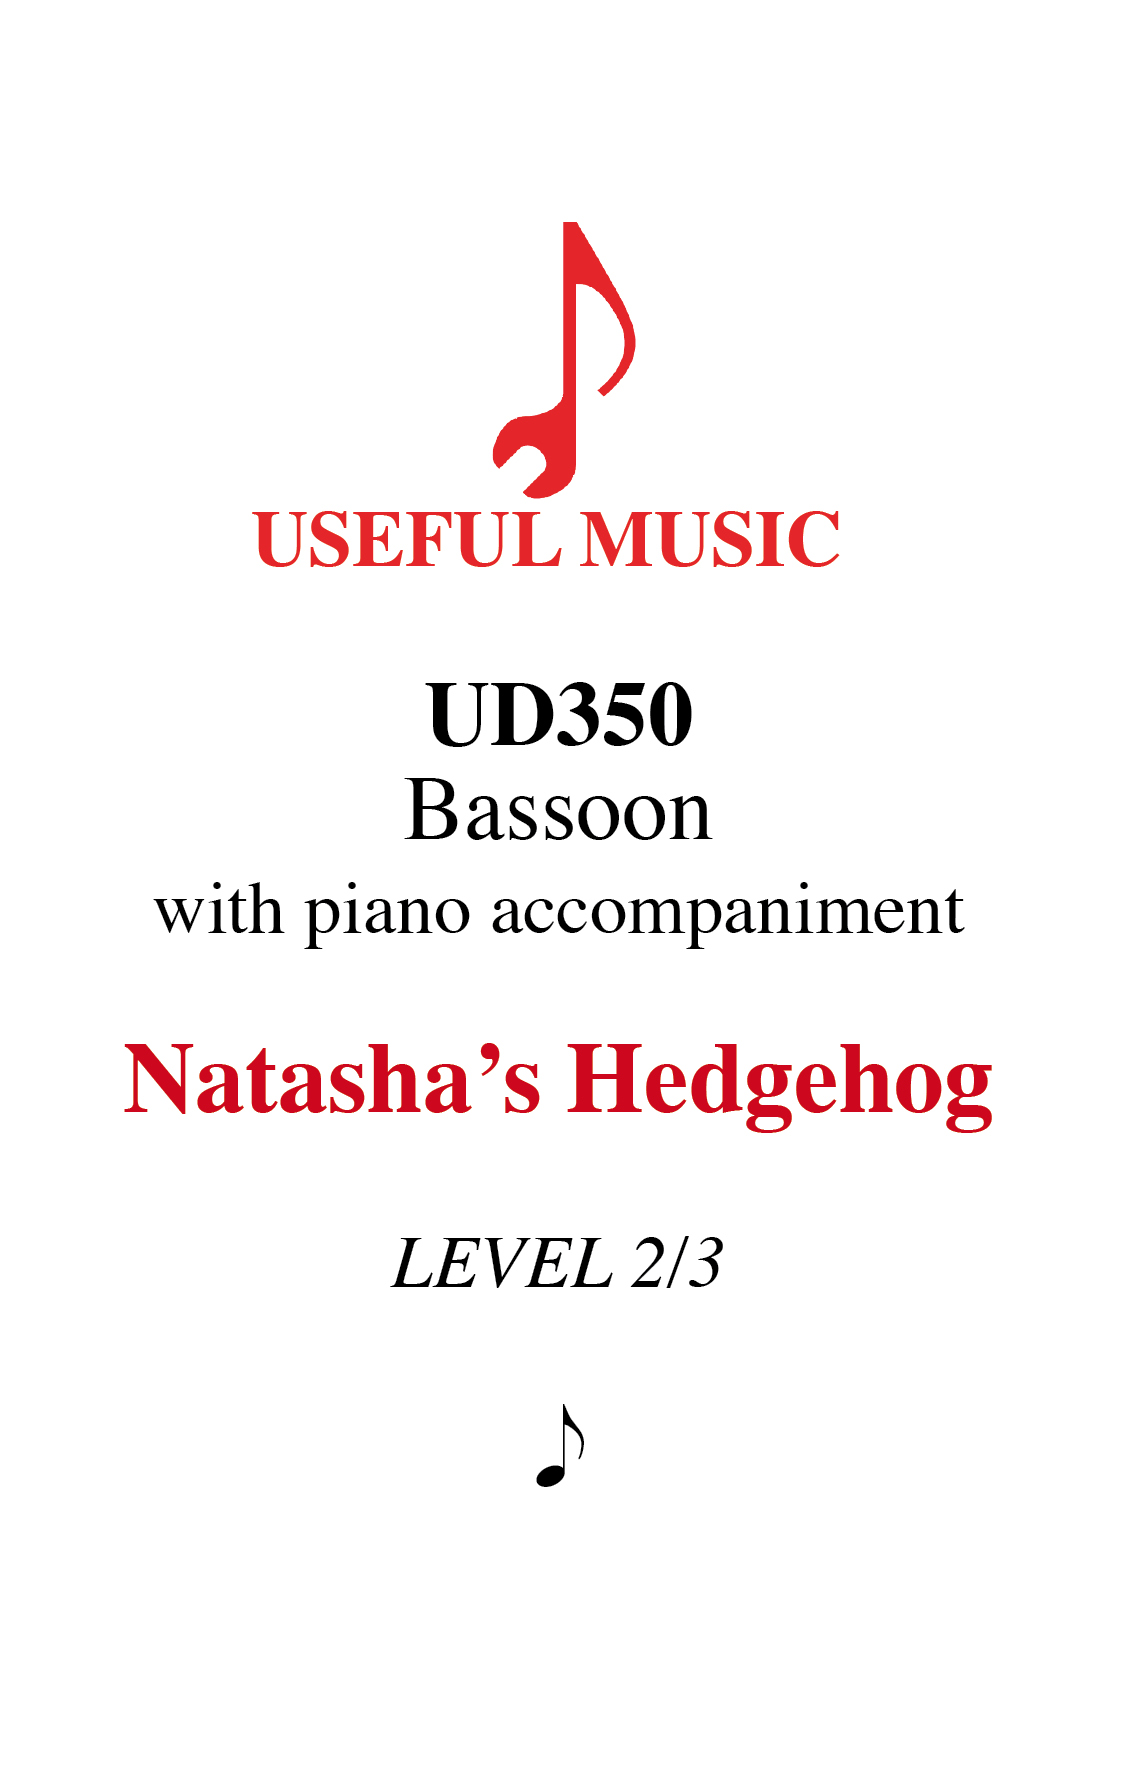 Natasha's Hedgehog - bassoon with piano accompaniment